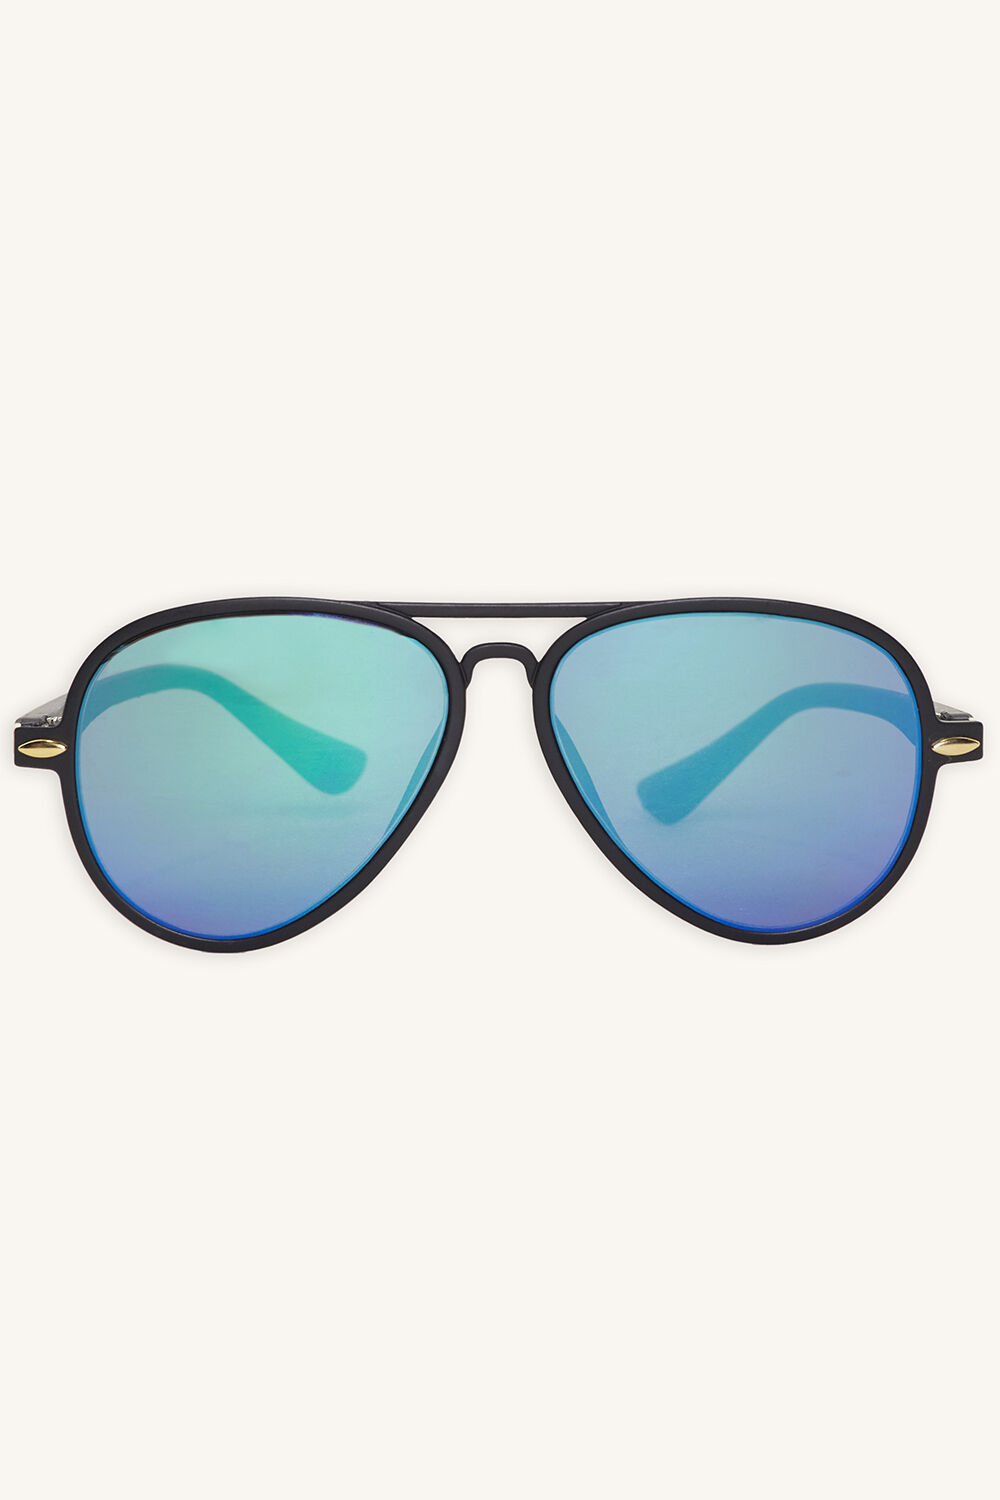 CRUISE AVIATOR SUNGLASSES in colour BLUE BELL